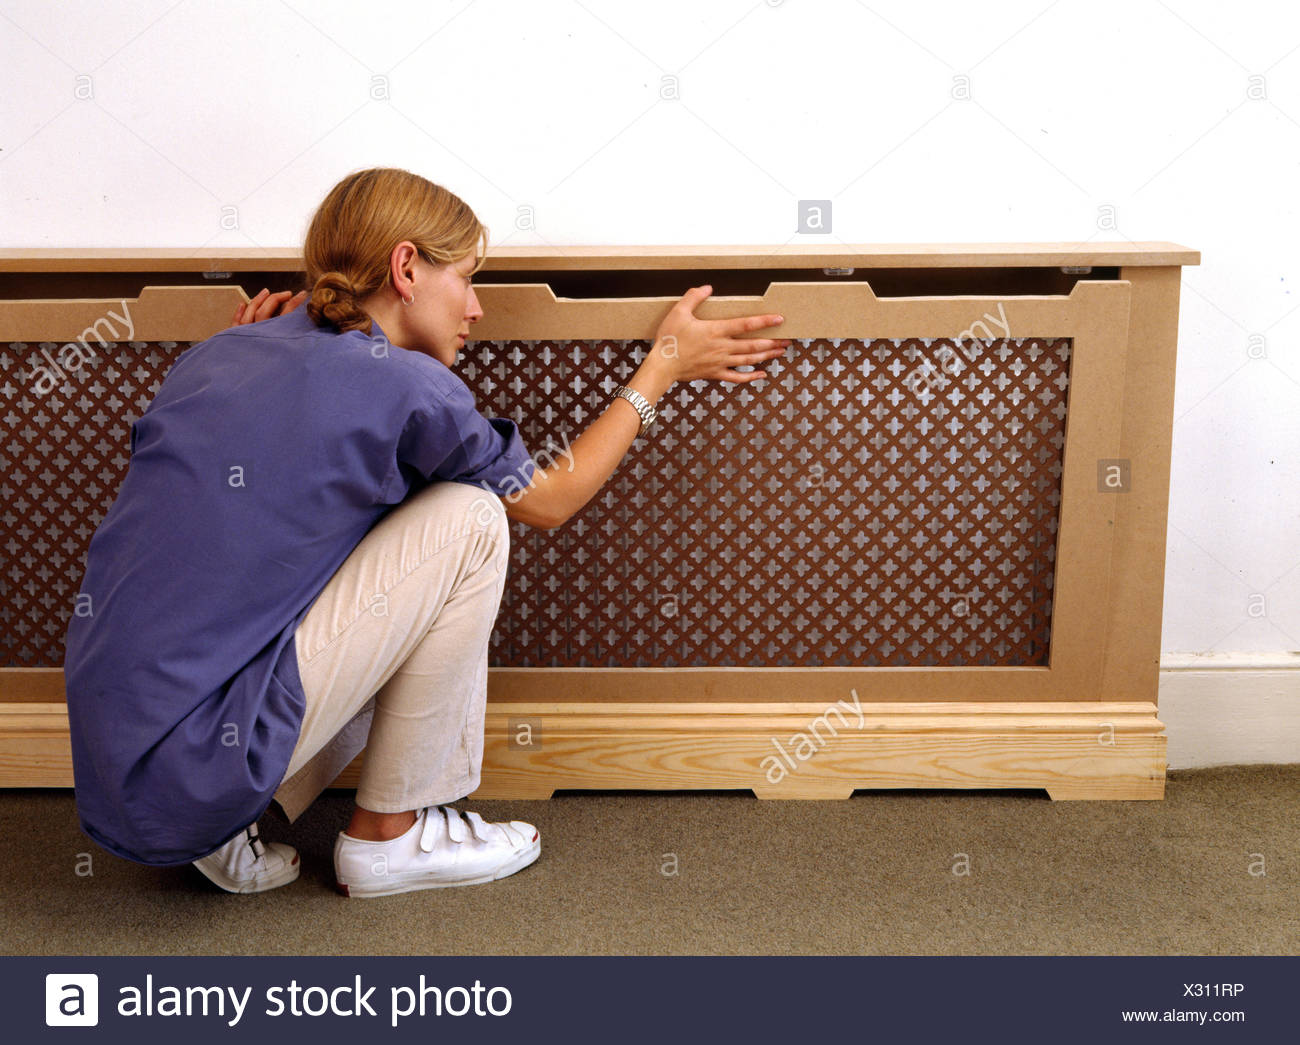 Fitting A Radiator Cover High Resolution Stock Photography And Images Alamy